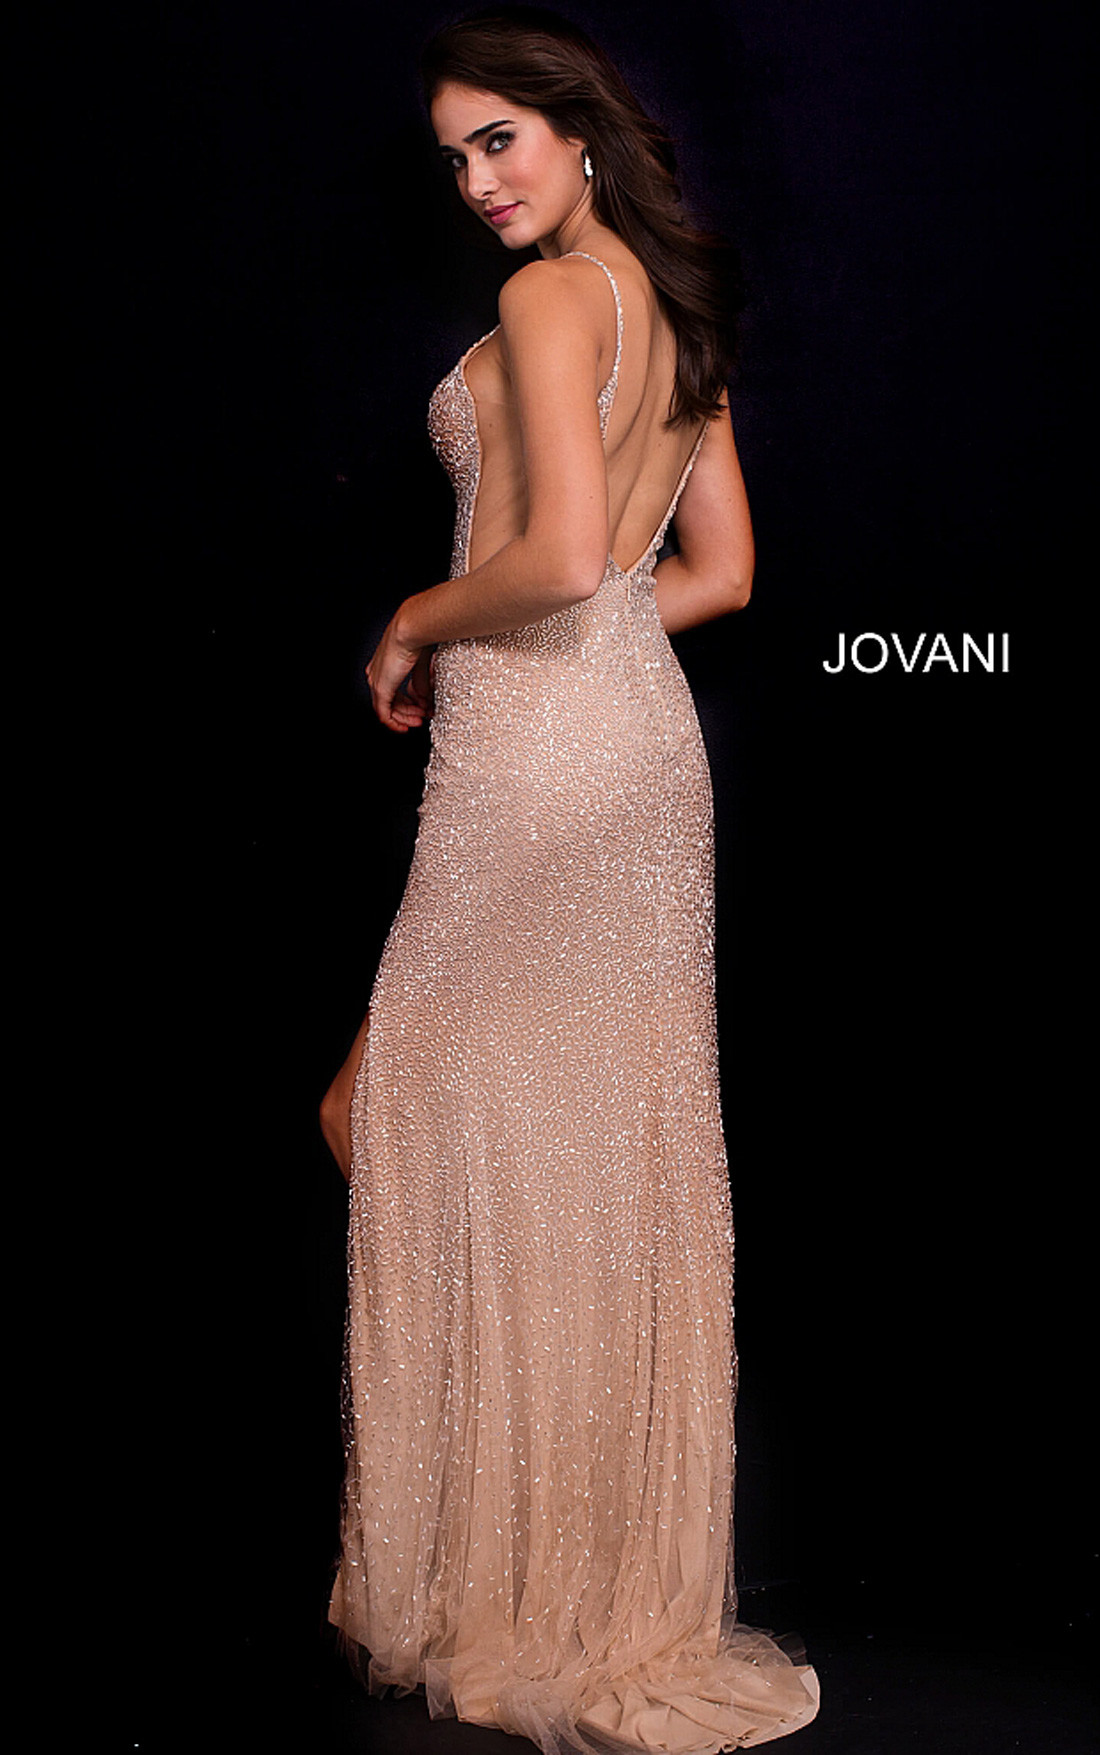 Jovani - Nude Beaded Backless Spaghetti Straps Dress (58506)